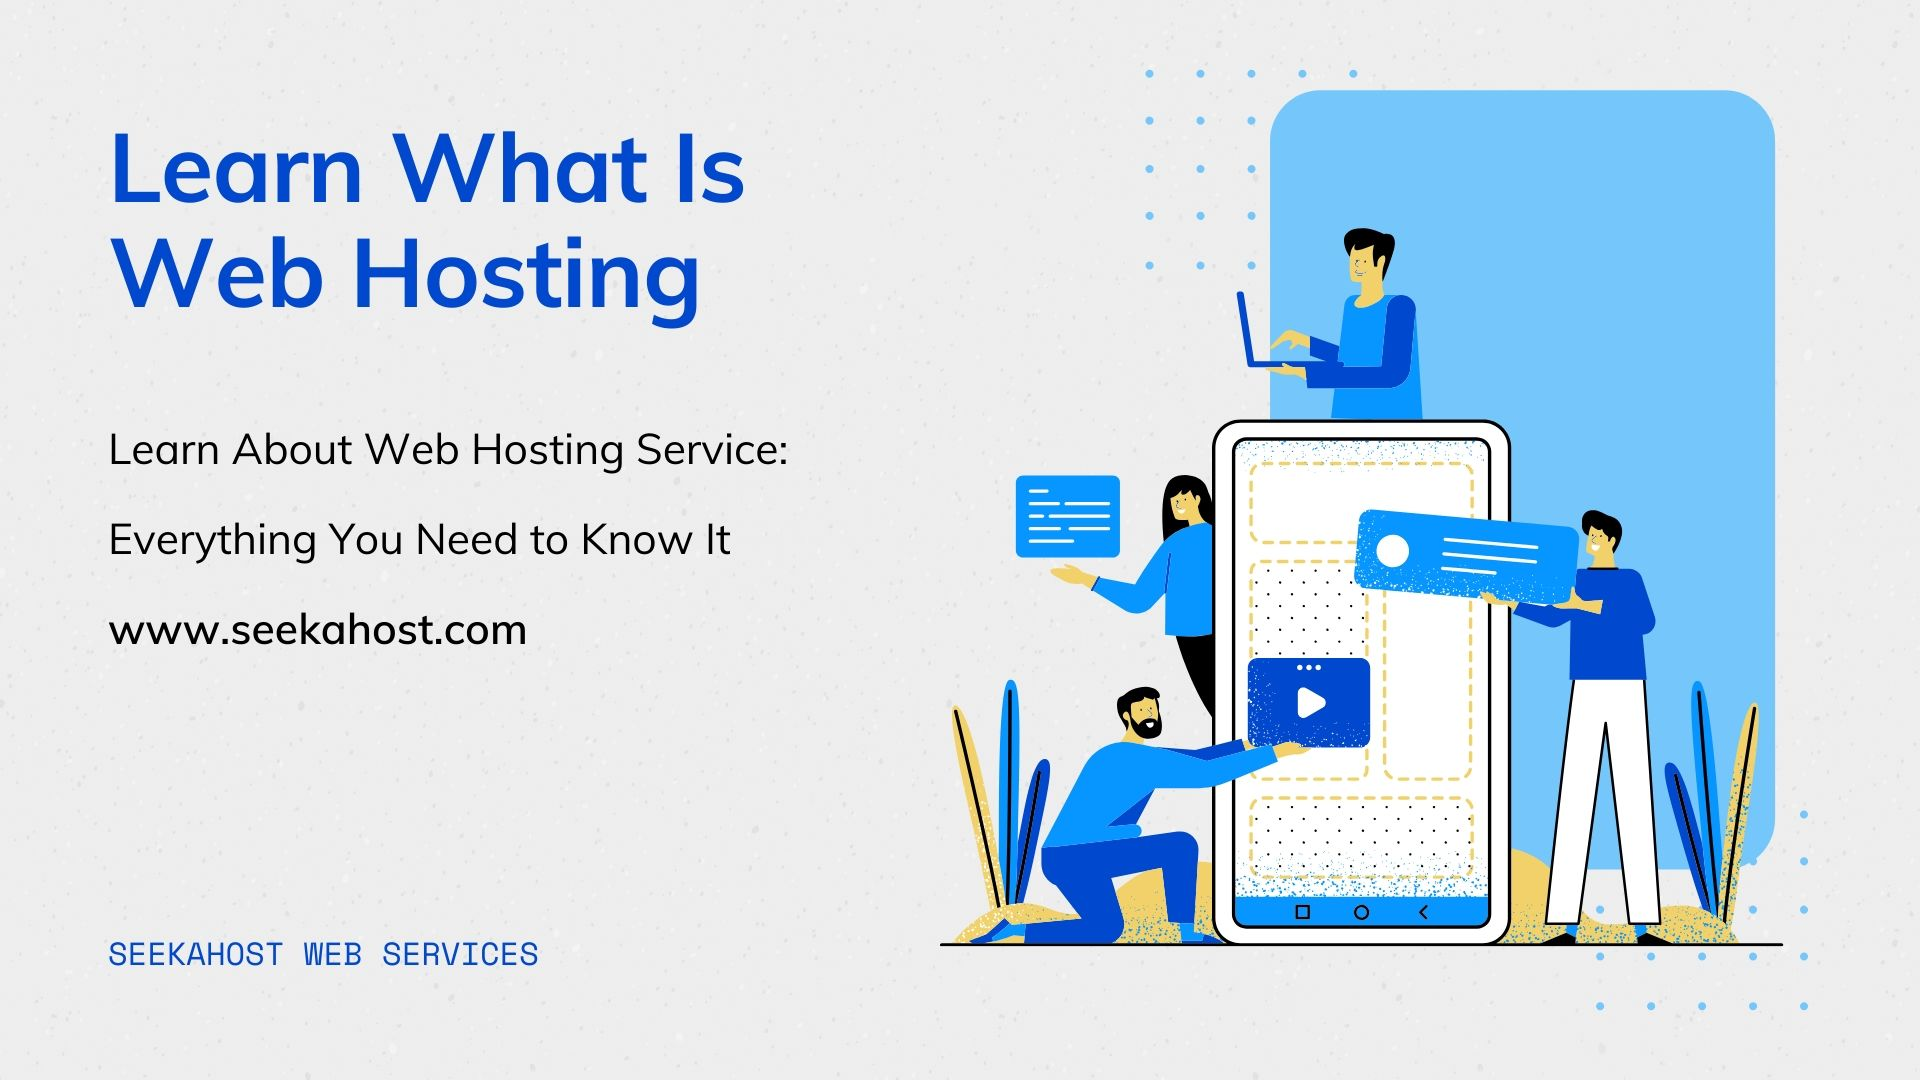 About-Web-Hosting-Services